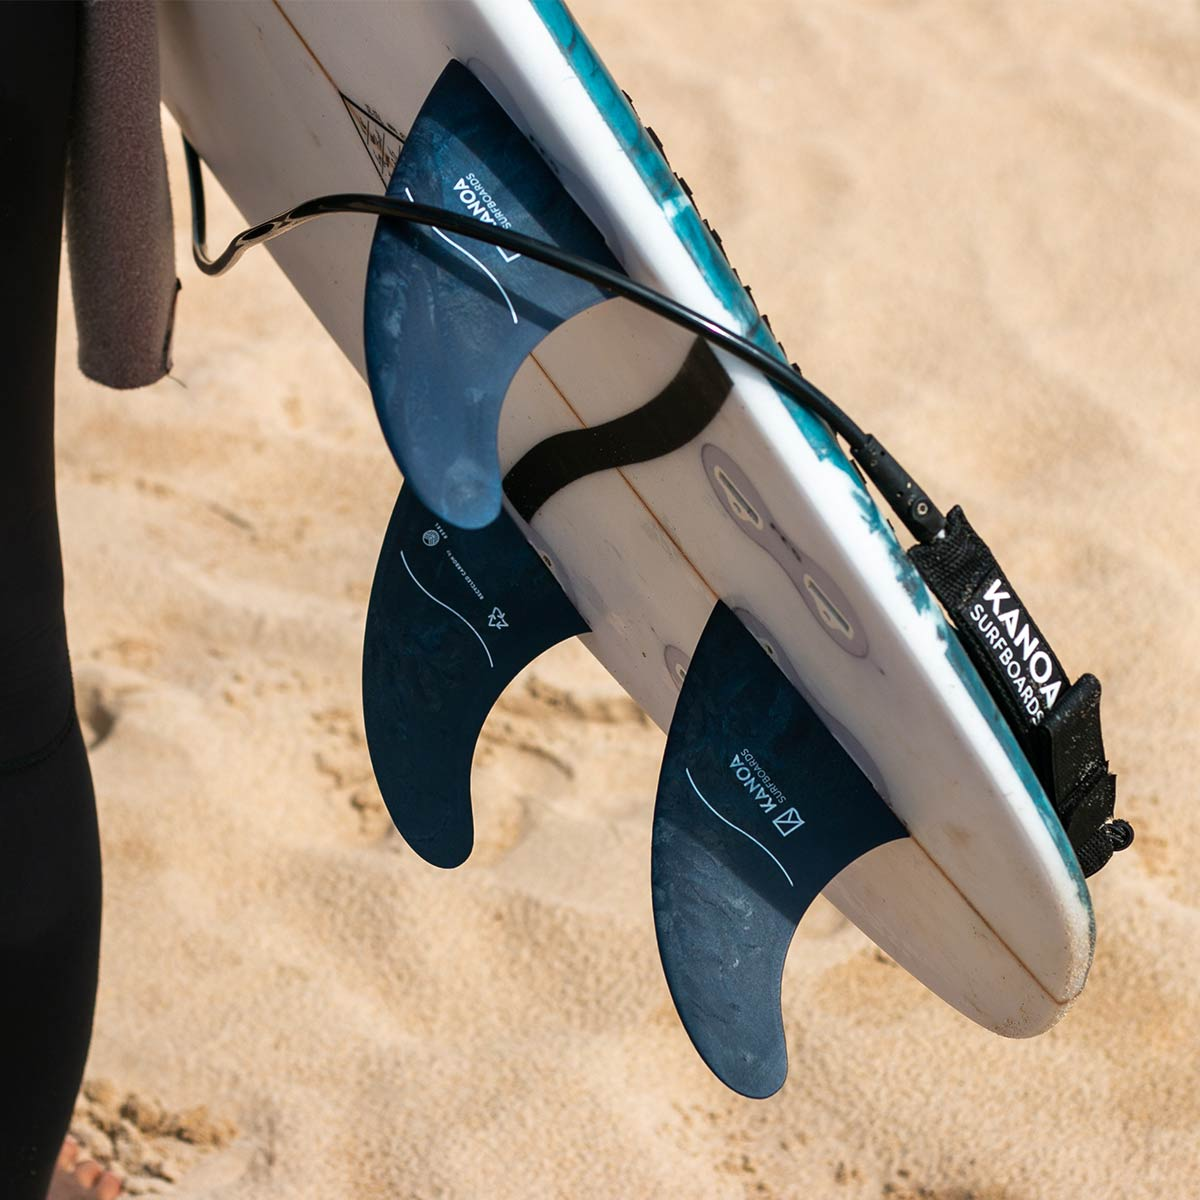 KANOA-recycled-rebel-fins-thrusterset